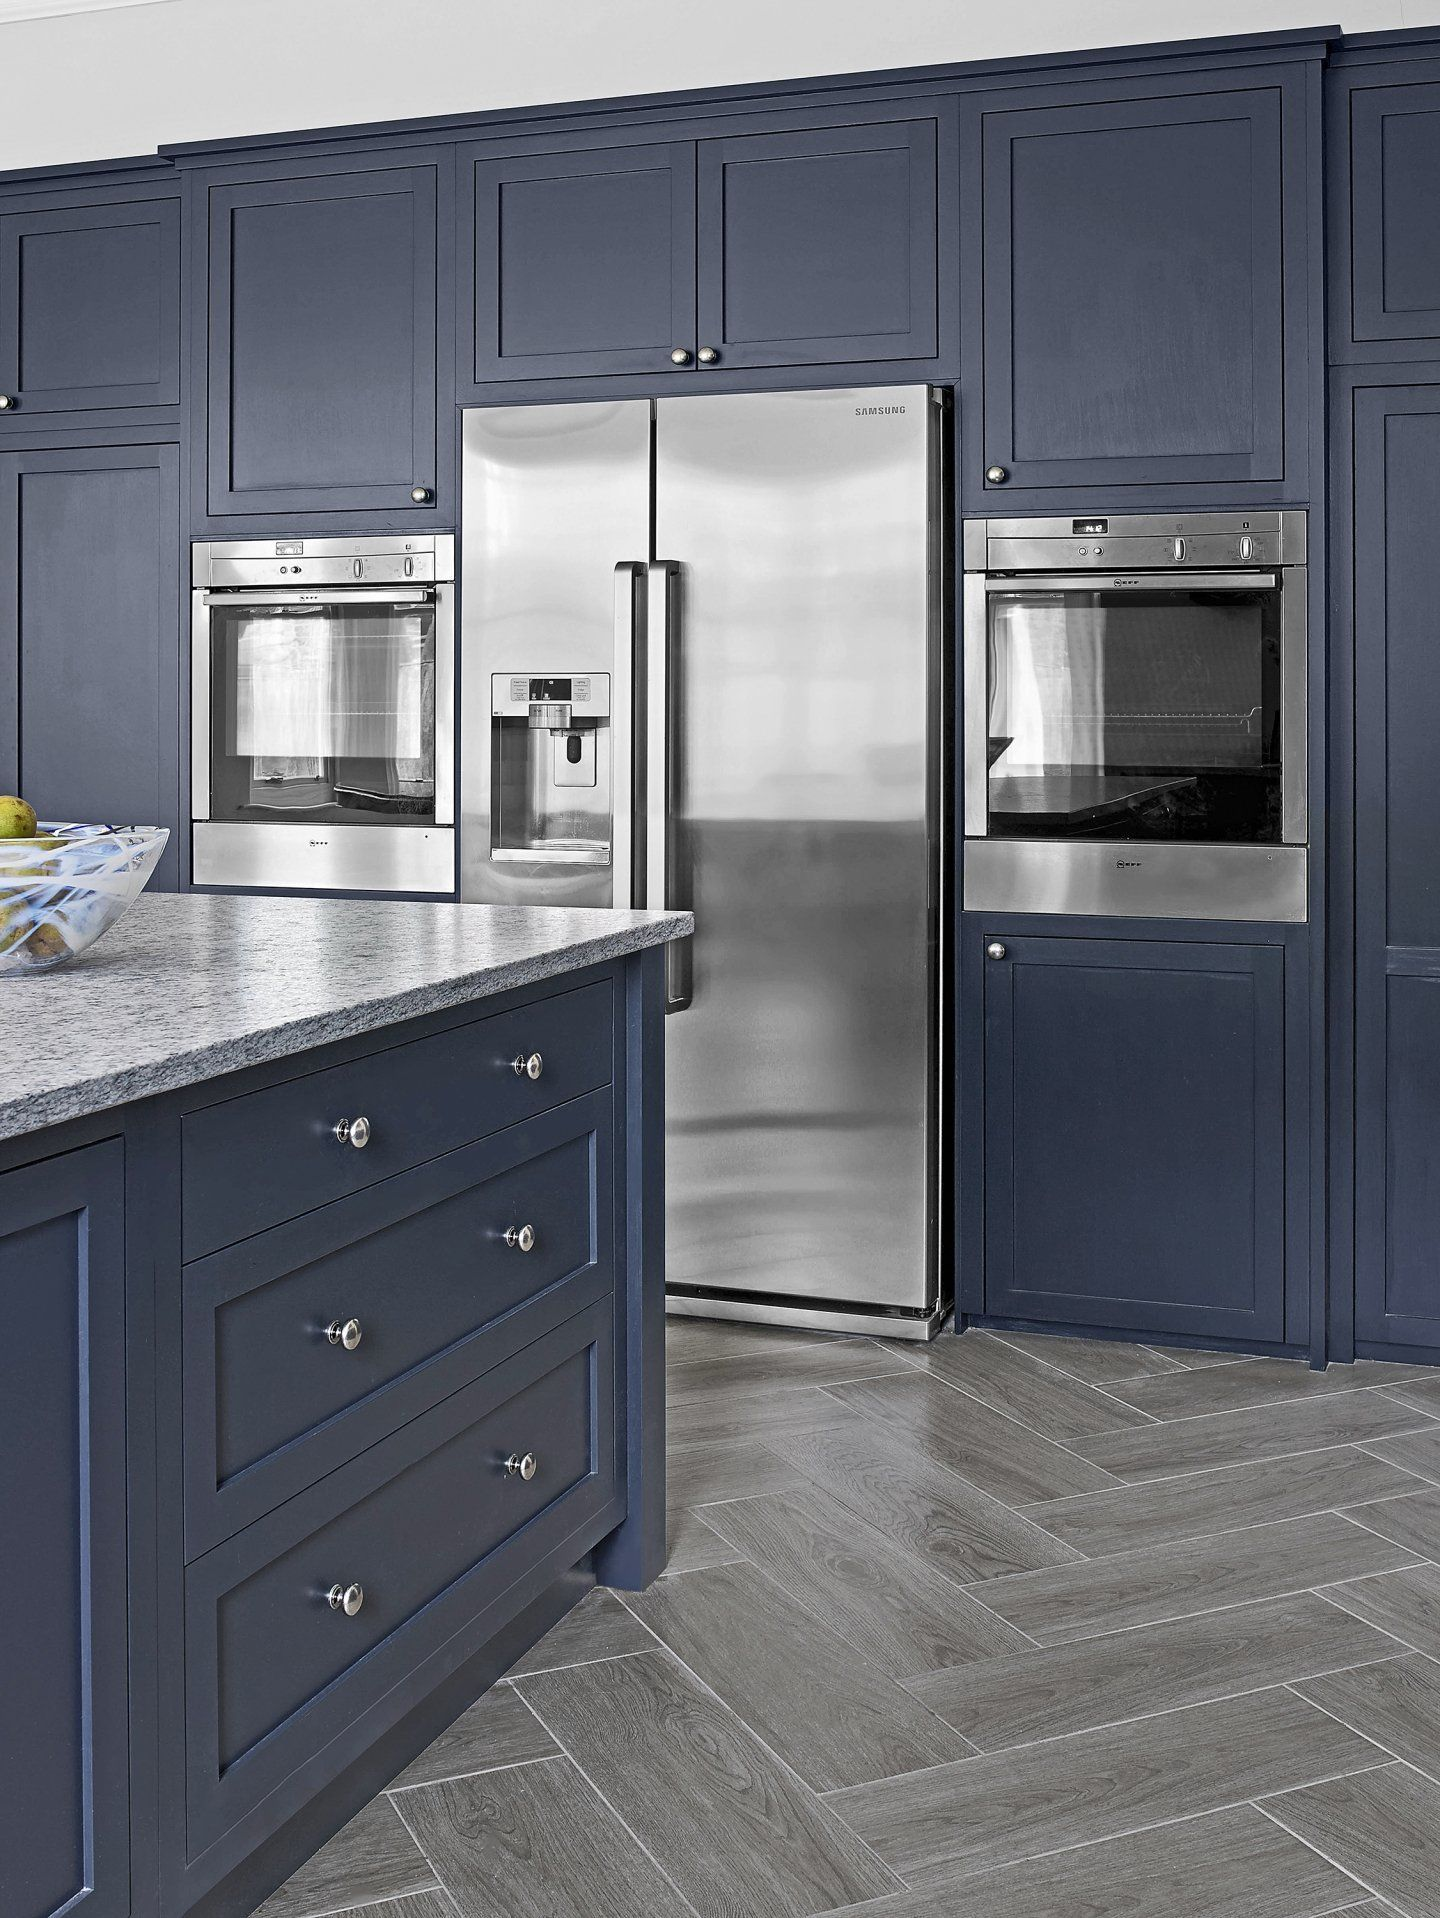 The Soft Almost Matte Finish On The Navy Blue Doors And Drawers In This Handsome Kitchen F Diy Kitchen Renovation Kitchen Cabinet Design Navy Kitchen Cabinets